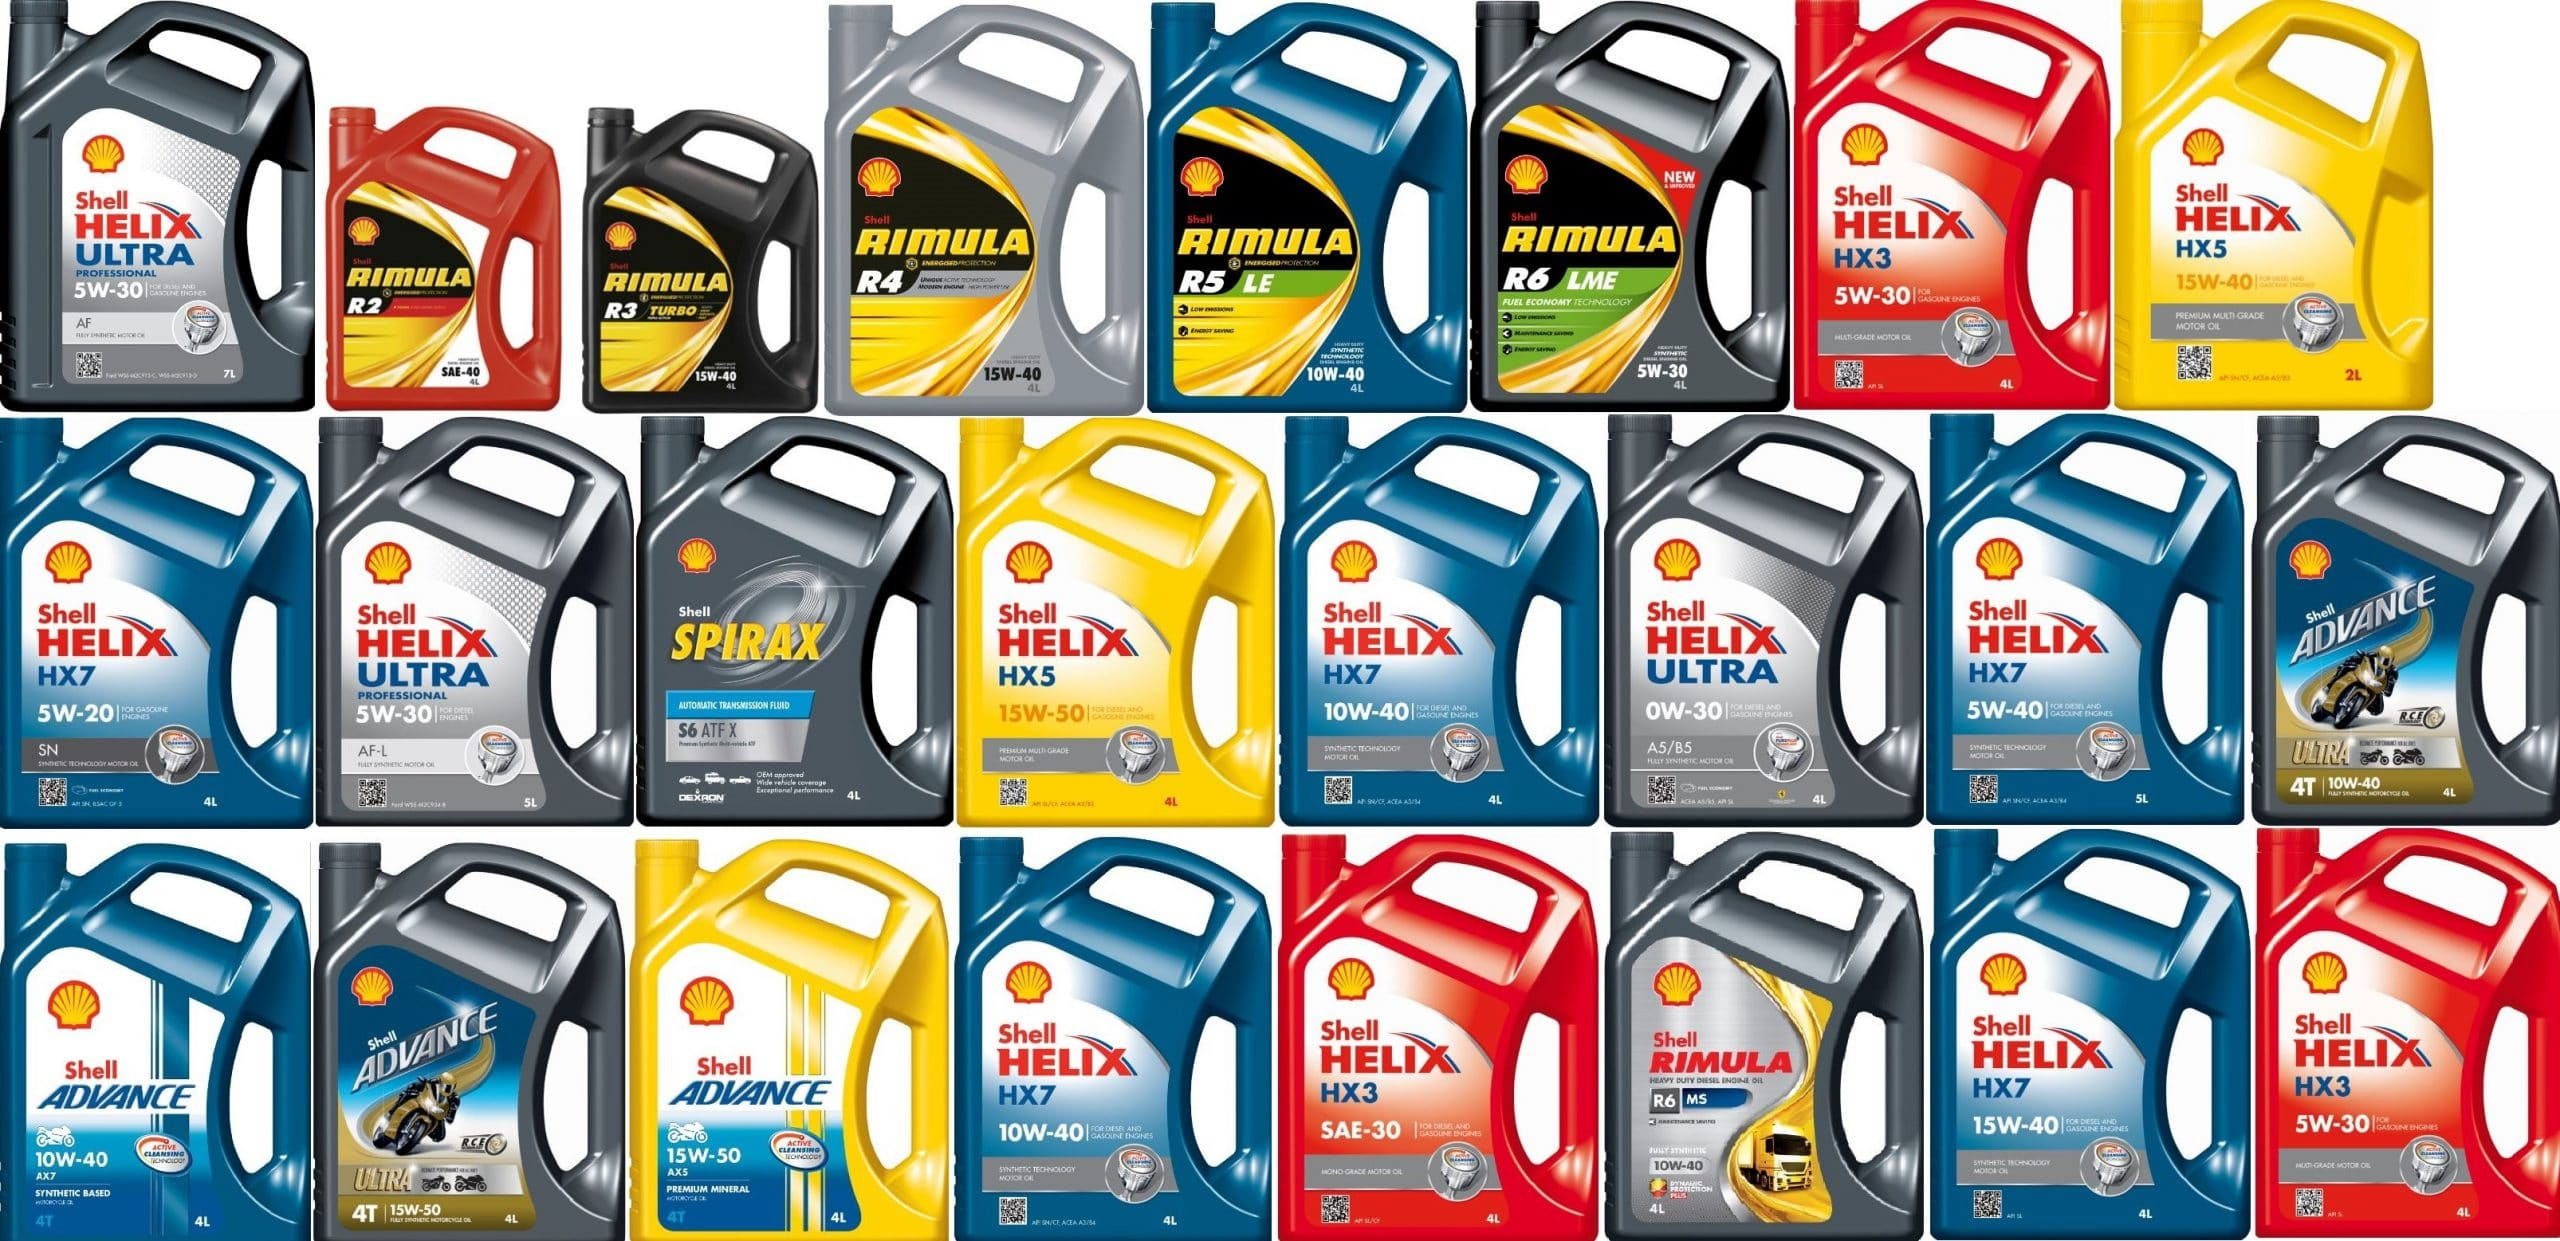 More SHELL lubricants added to the stock at Cannock site. Thumbnail